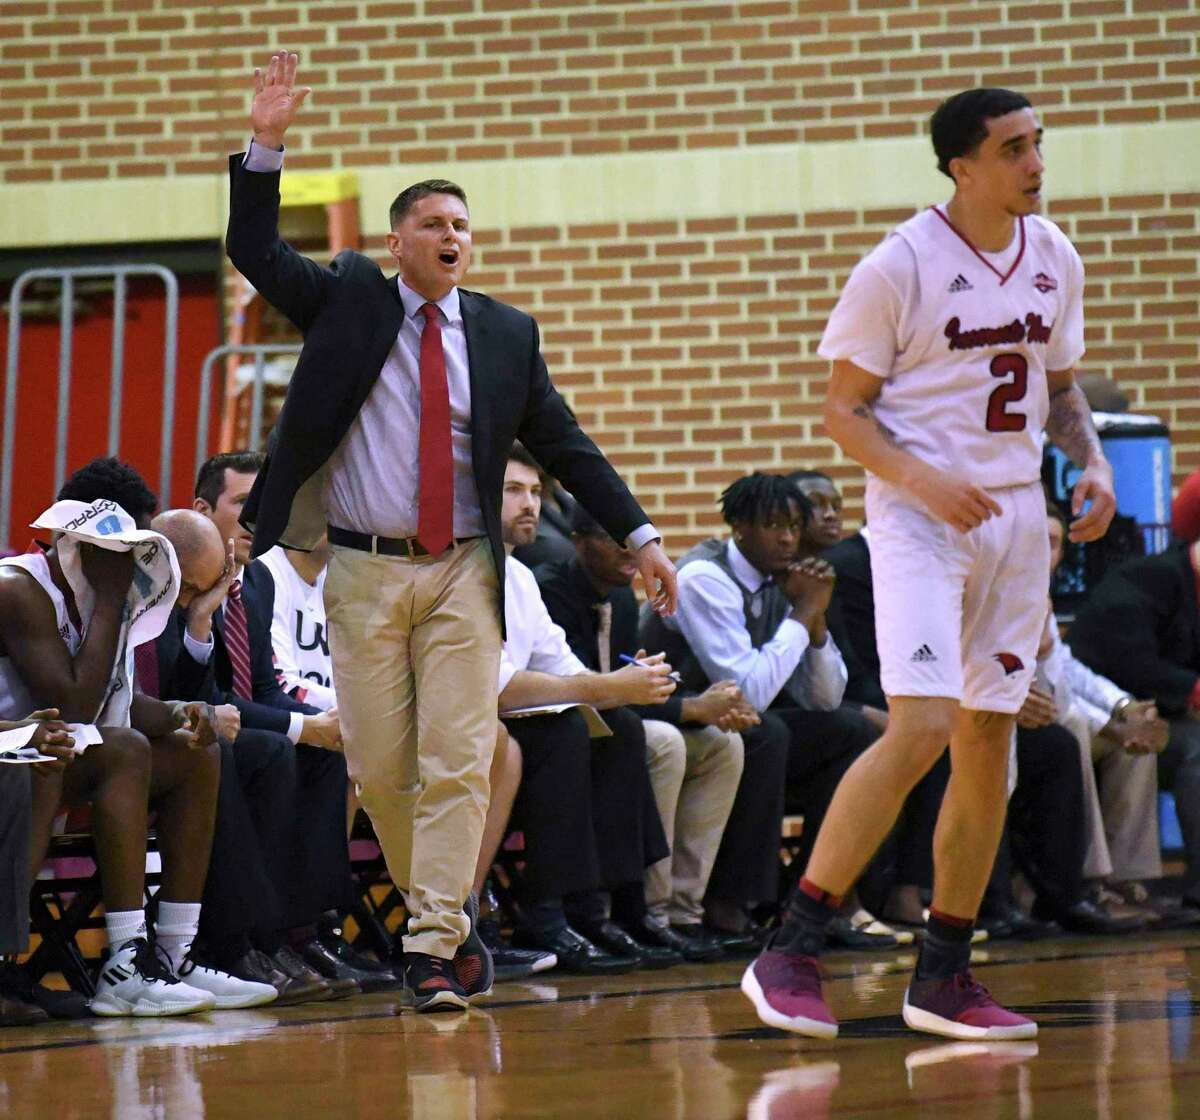 Incarnate Word coach Carson Cunningham shouts instructions to his team during college basketball action against Central Arkansas in the McDermott Convocation Center on Wednesday, Jan 16, 2019.